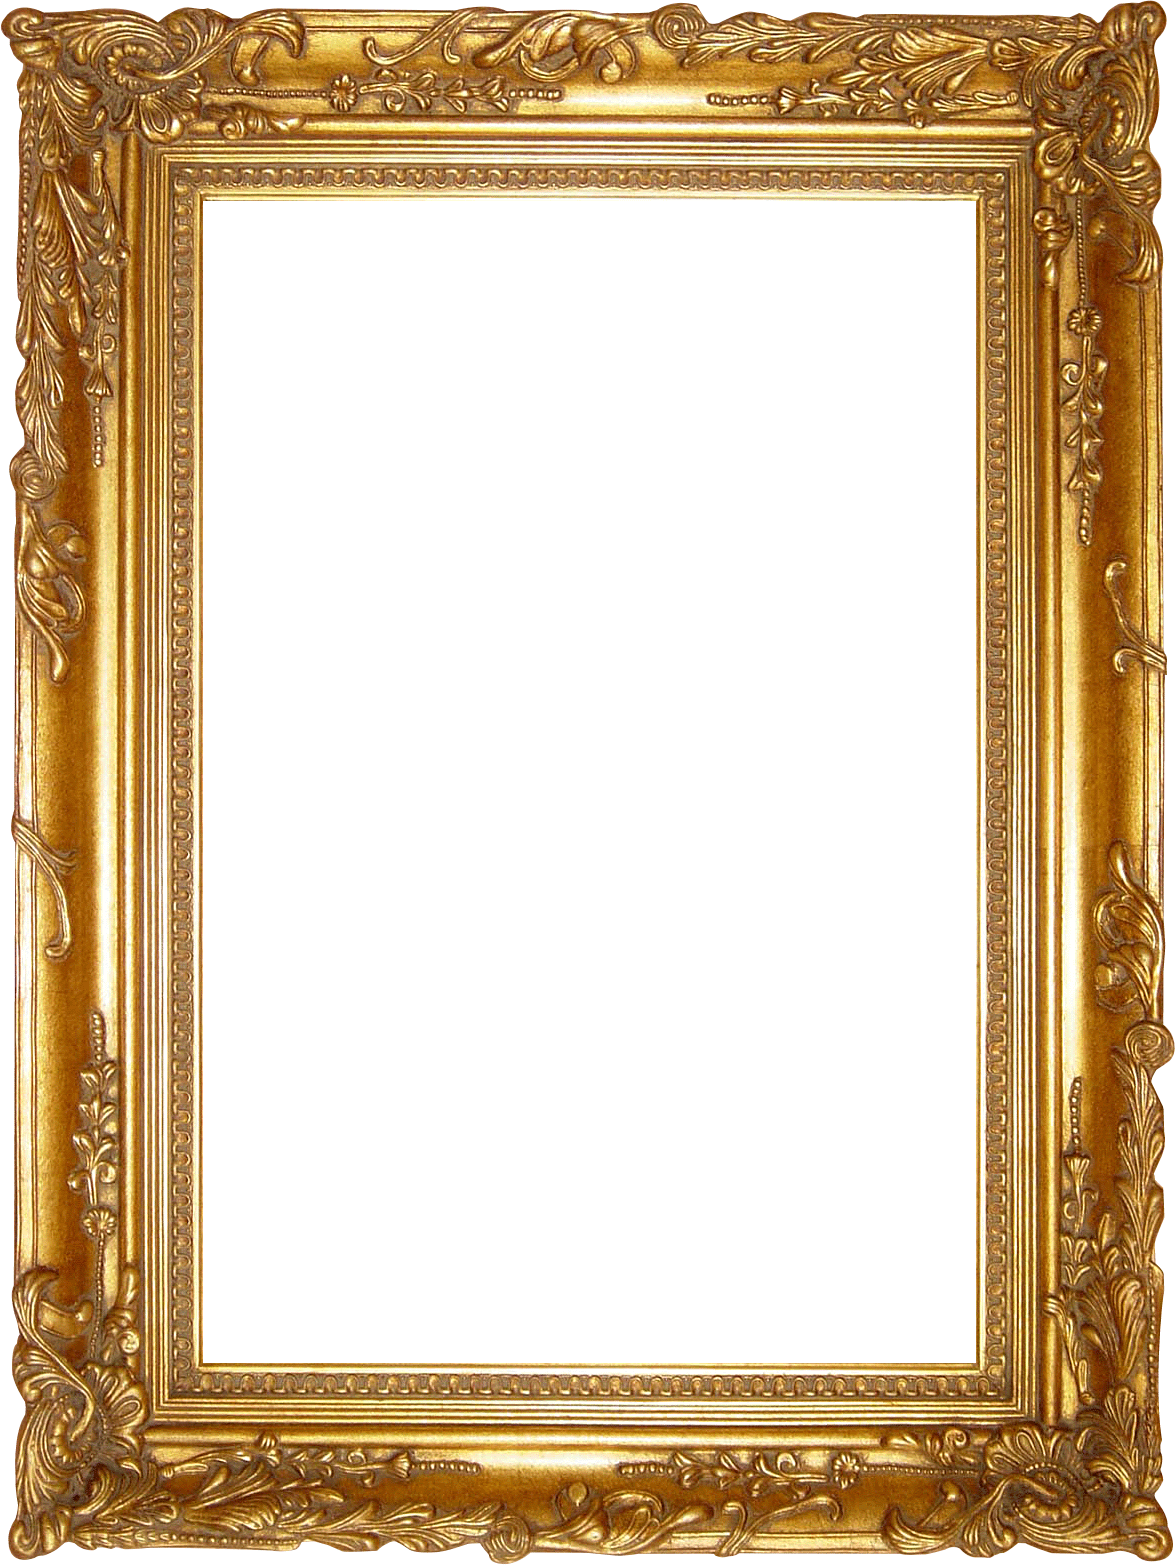 Painting Frames Art Painting Frames Home Decor Pinterest Painting Frames